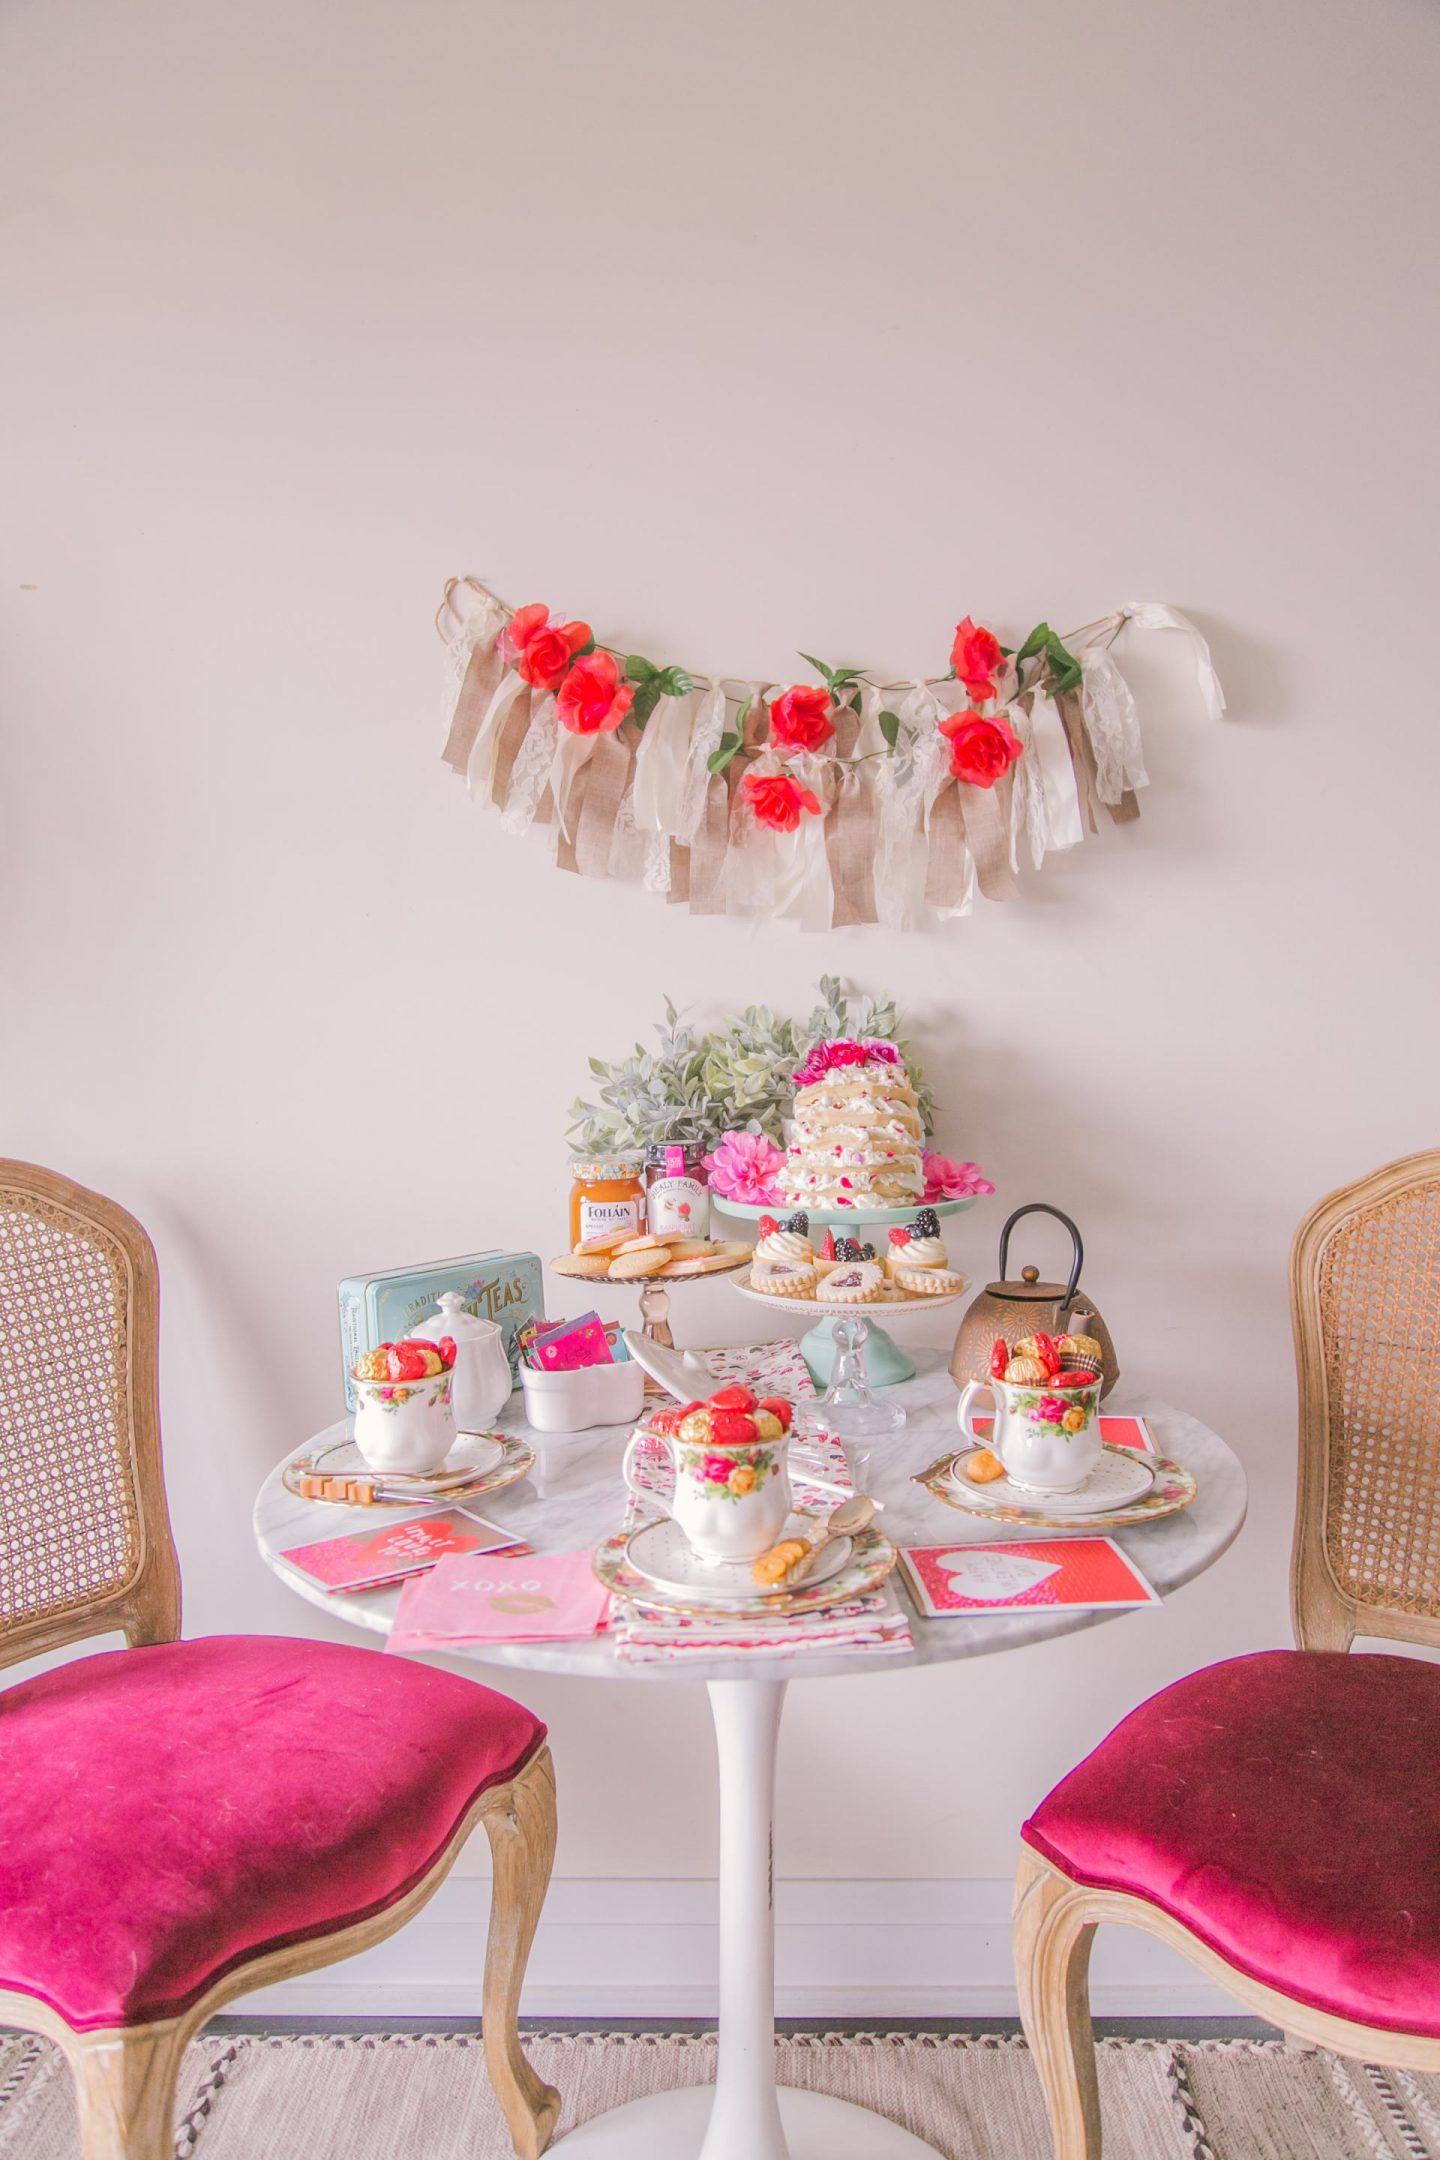 Galentine's Day afternoon tea party table setup inspiration